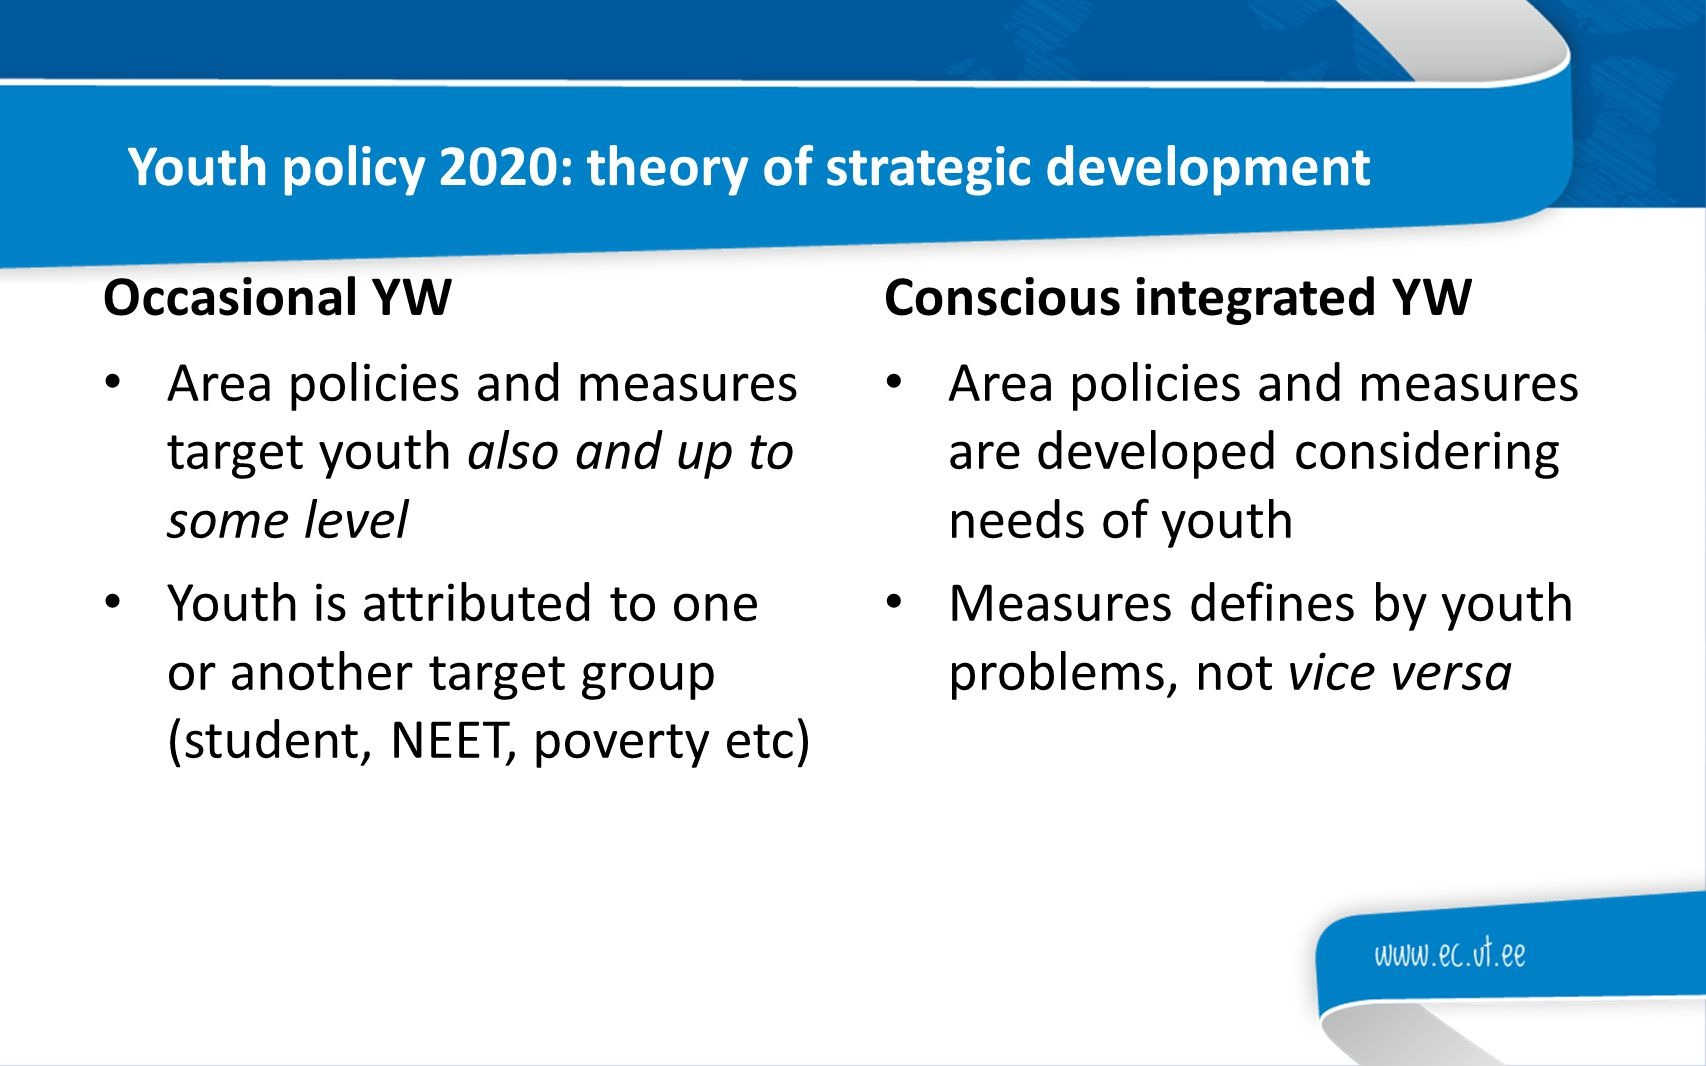 Youth policy 2020: impact on youth Young becomes passive (consumer attitudes, helplessness and adaptive options) Success or failure is cluster recognition feature (eg, failure in studies = difficulties at work = lower quality of life).